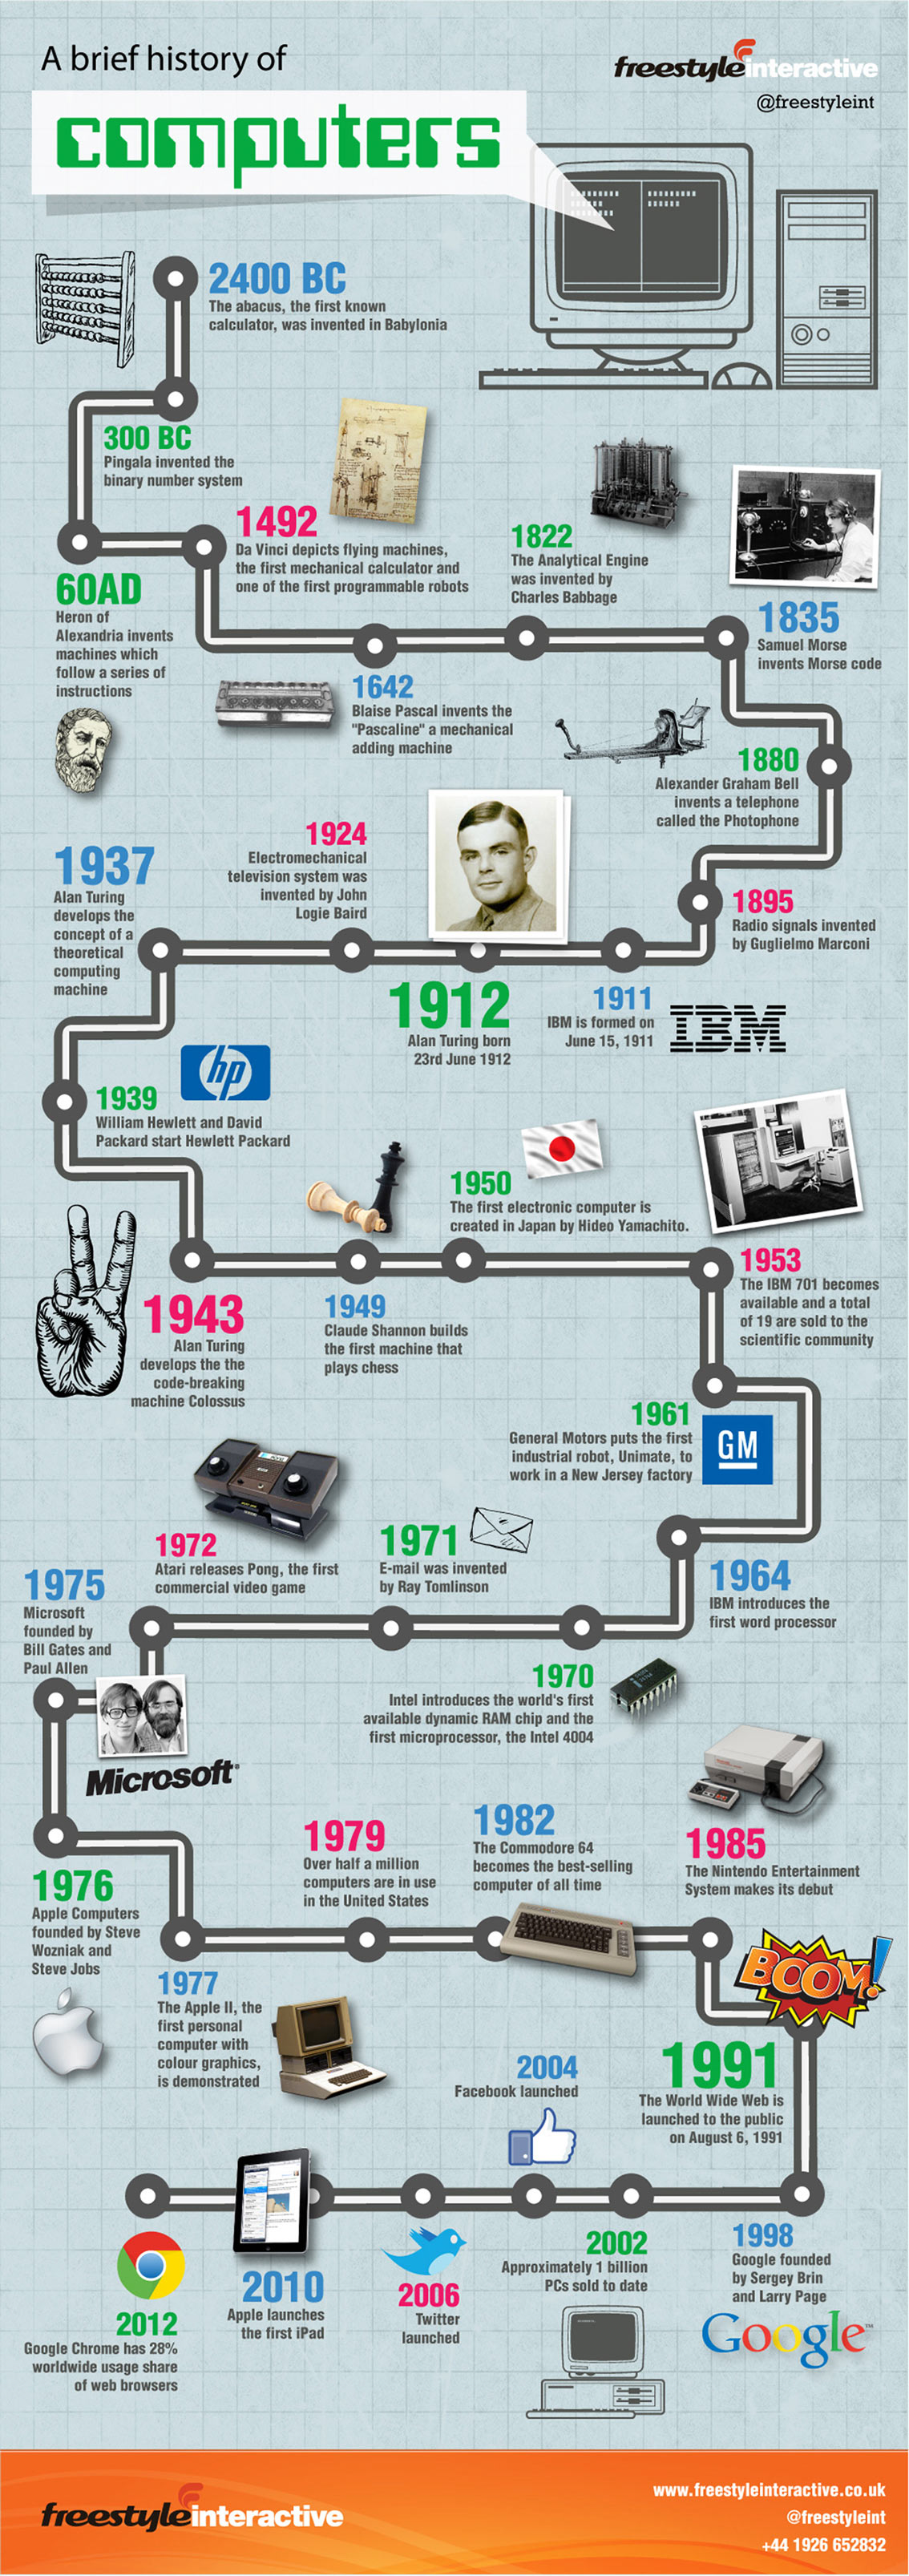 A Brief History of Computers Infographic